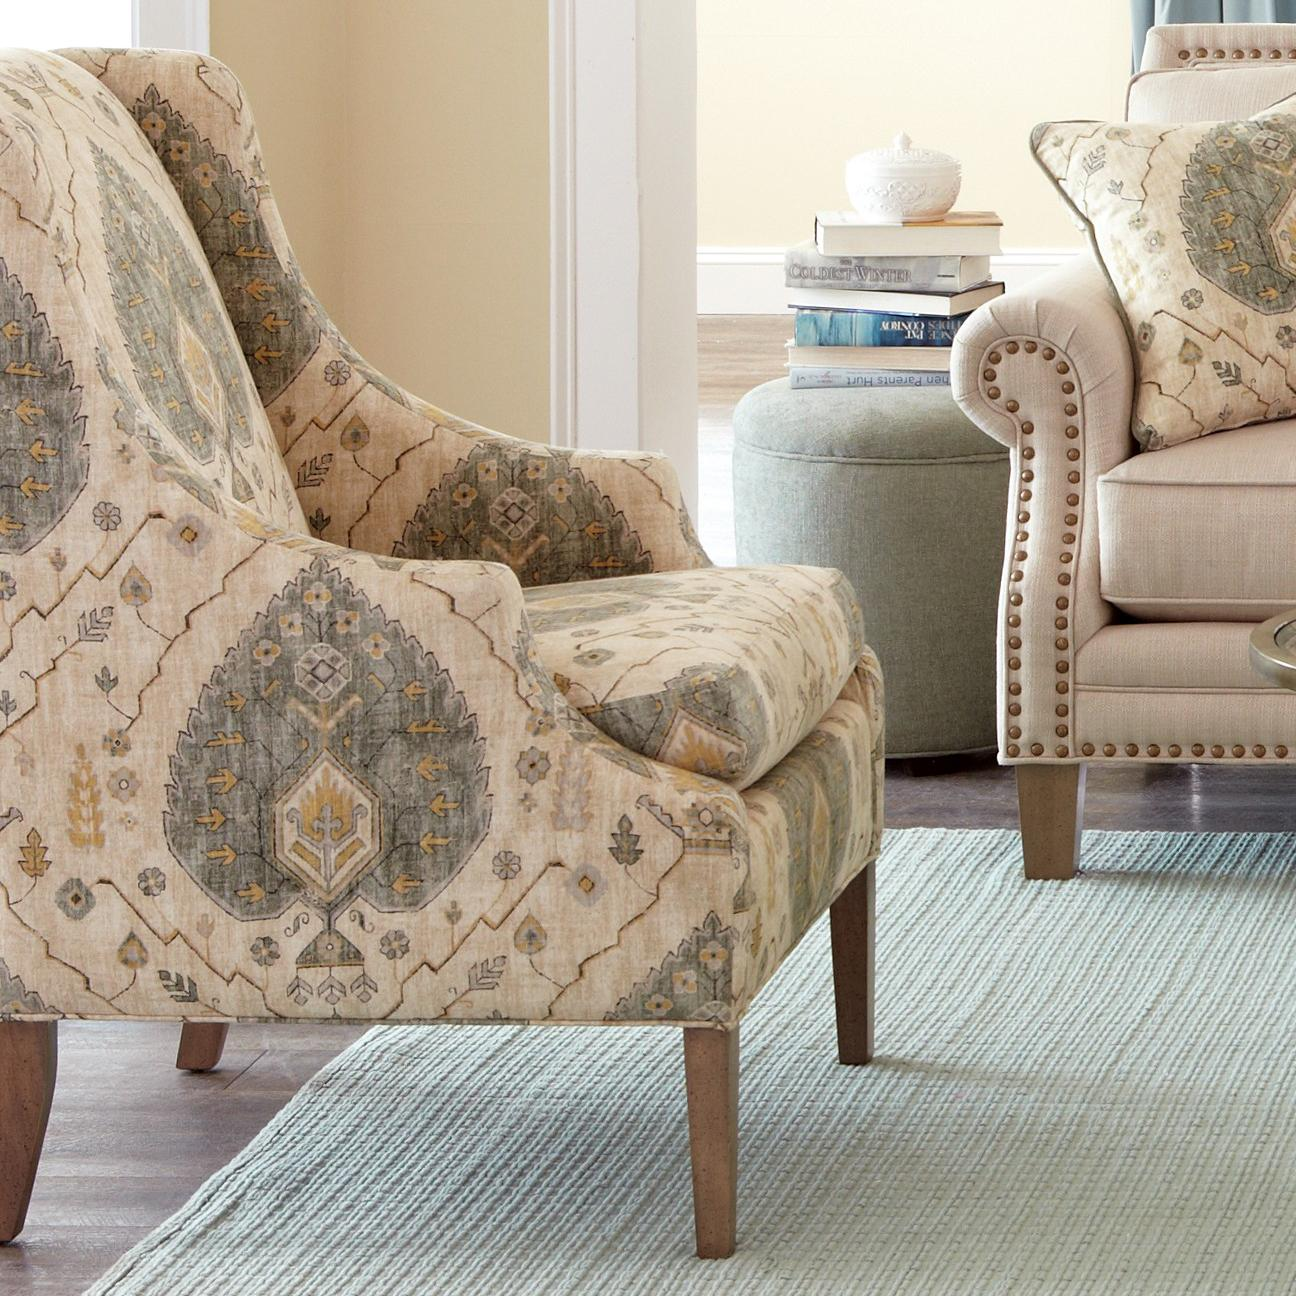 Bauer plantation chair - Craftmaster Accent Chairs Transitional Chair With Scalloped Arms Boulevard Home Furnishings Upholstered Chairs